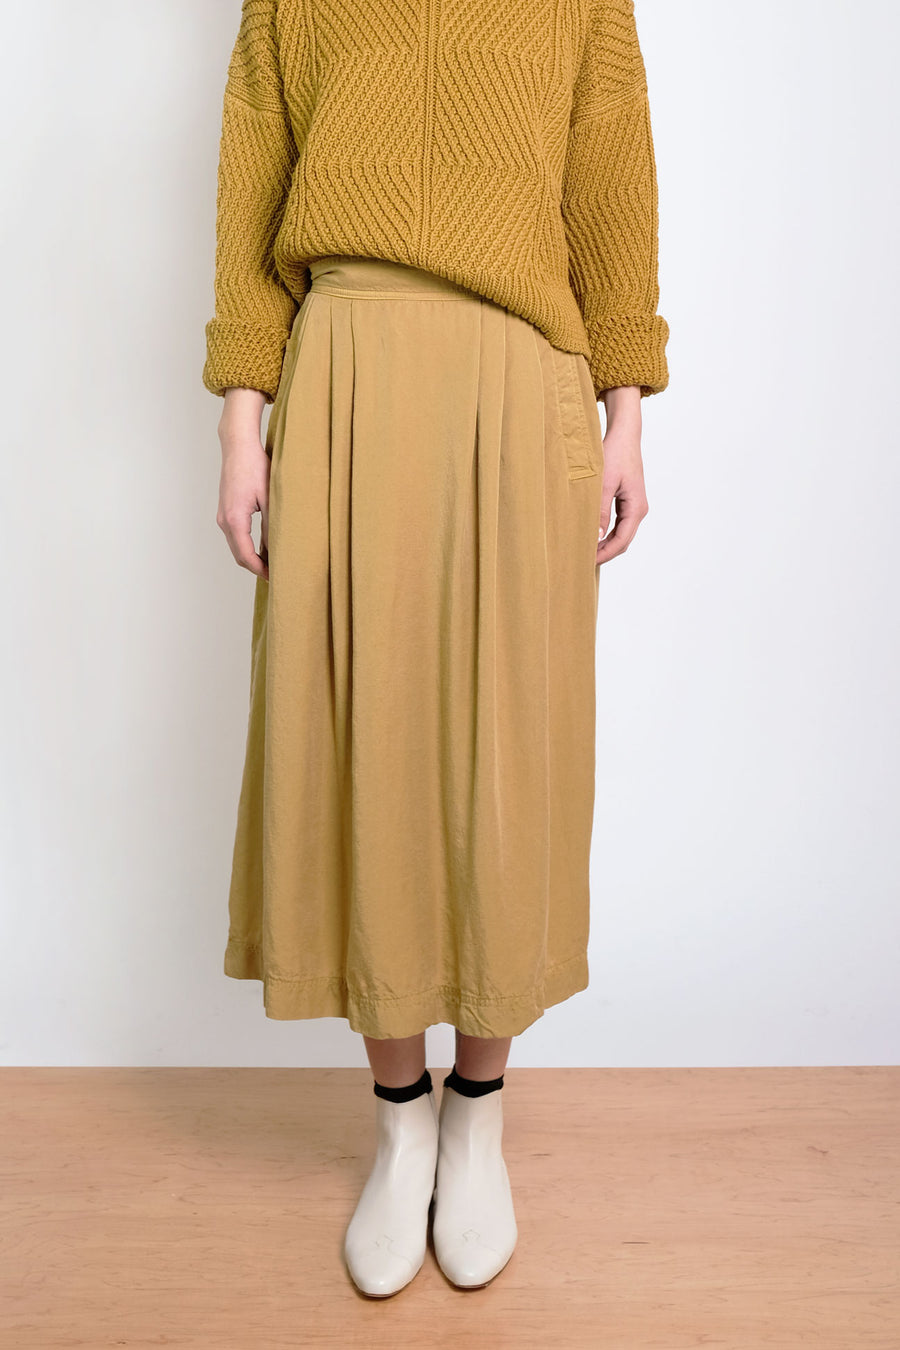 Ochre Ellis Pleated Skirt